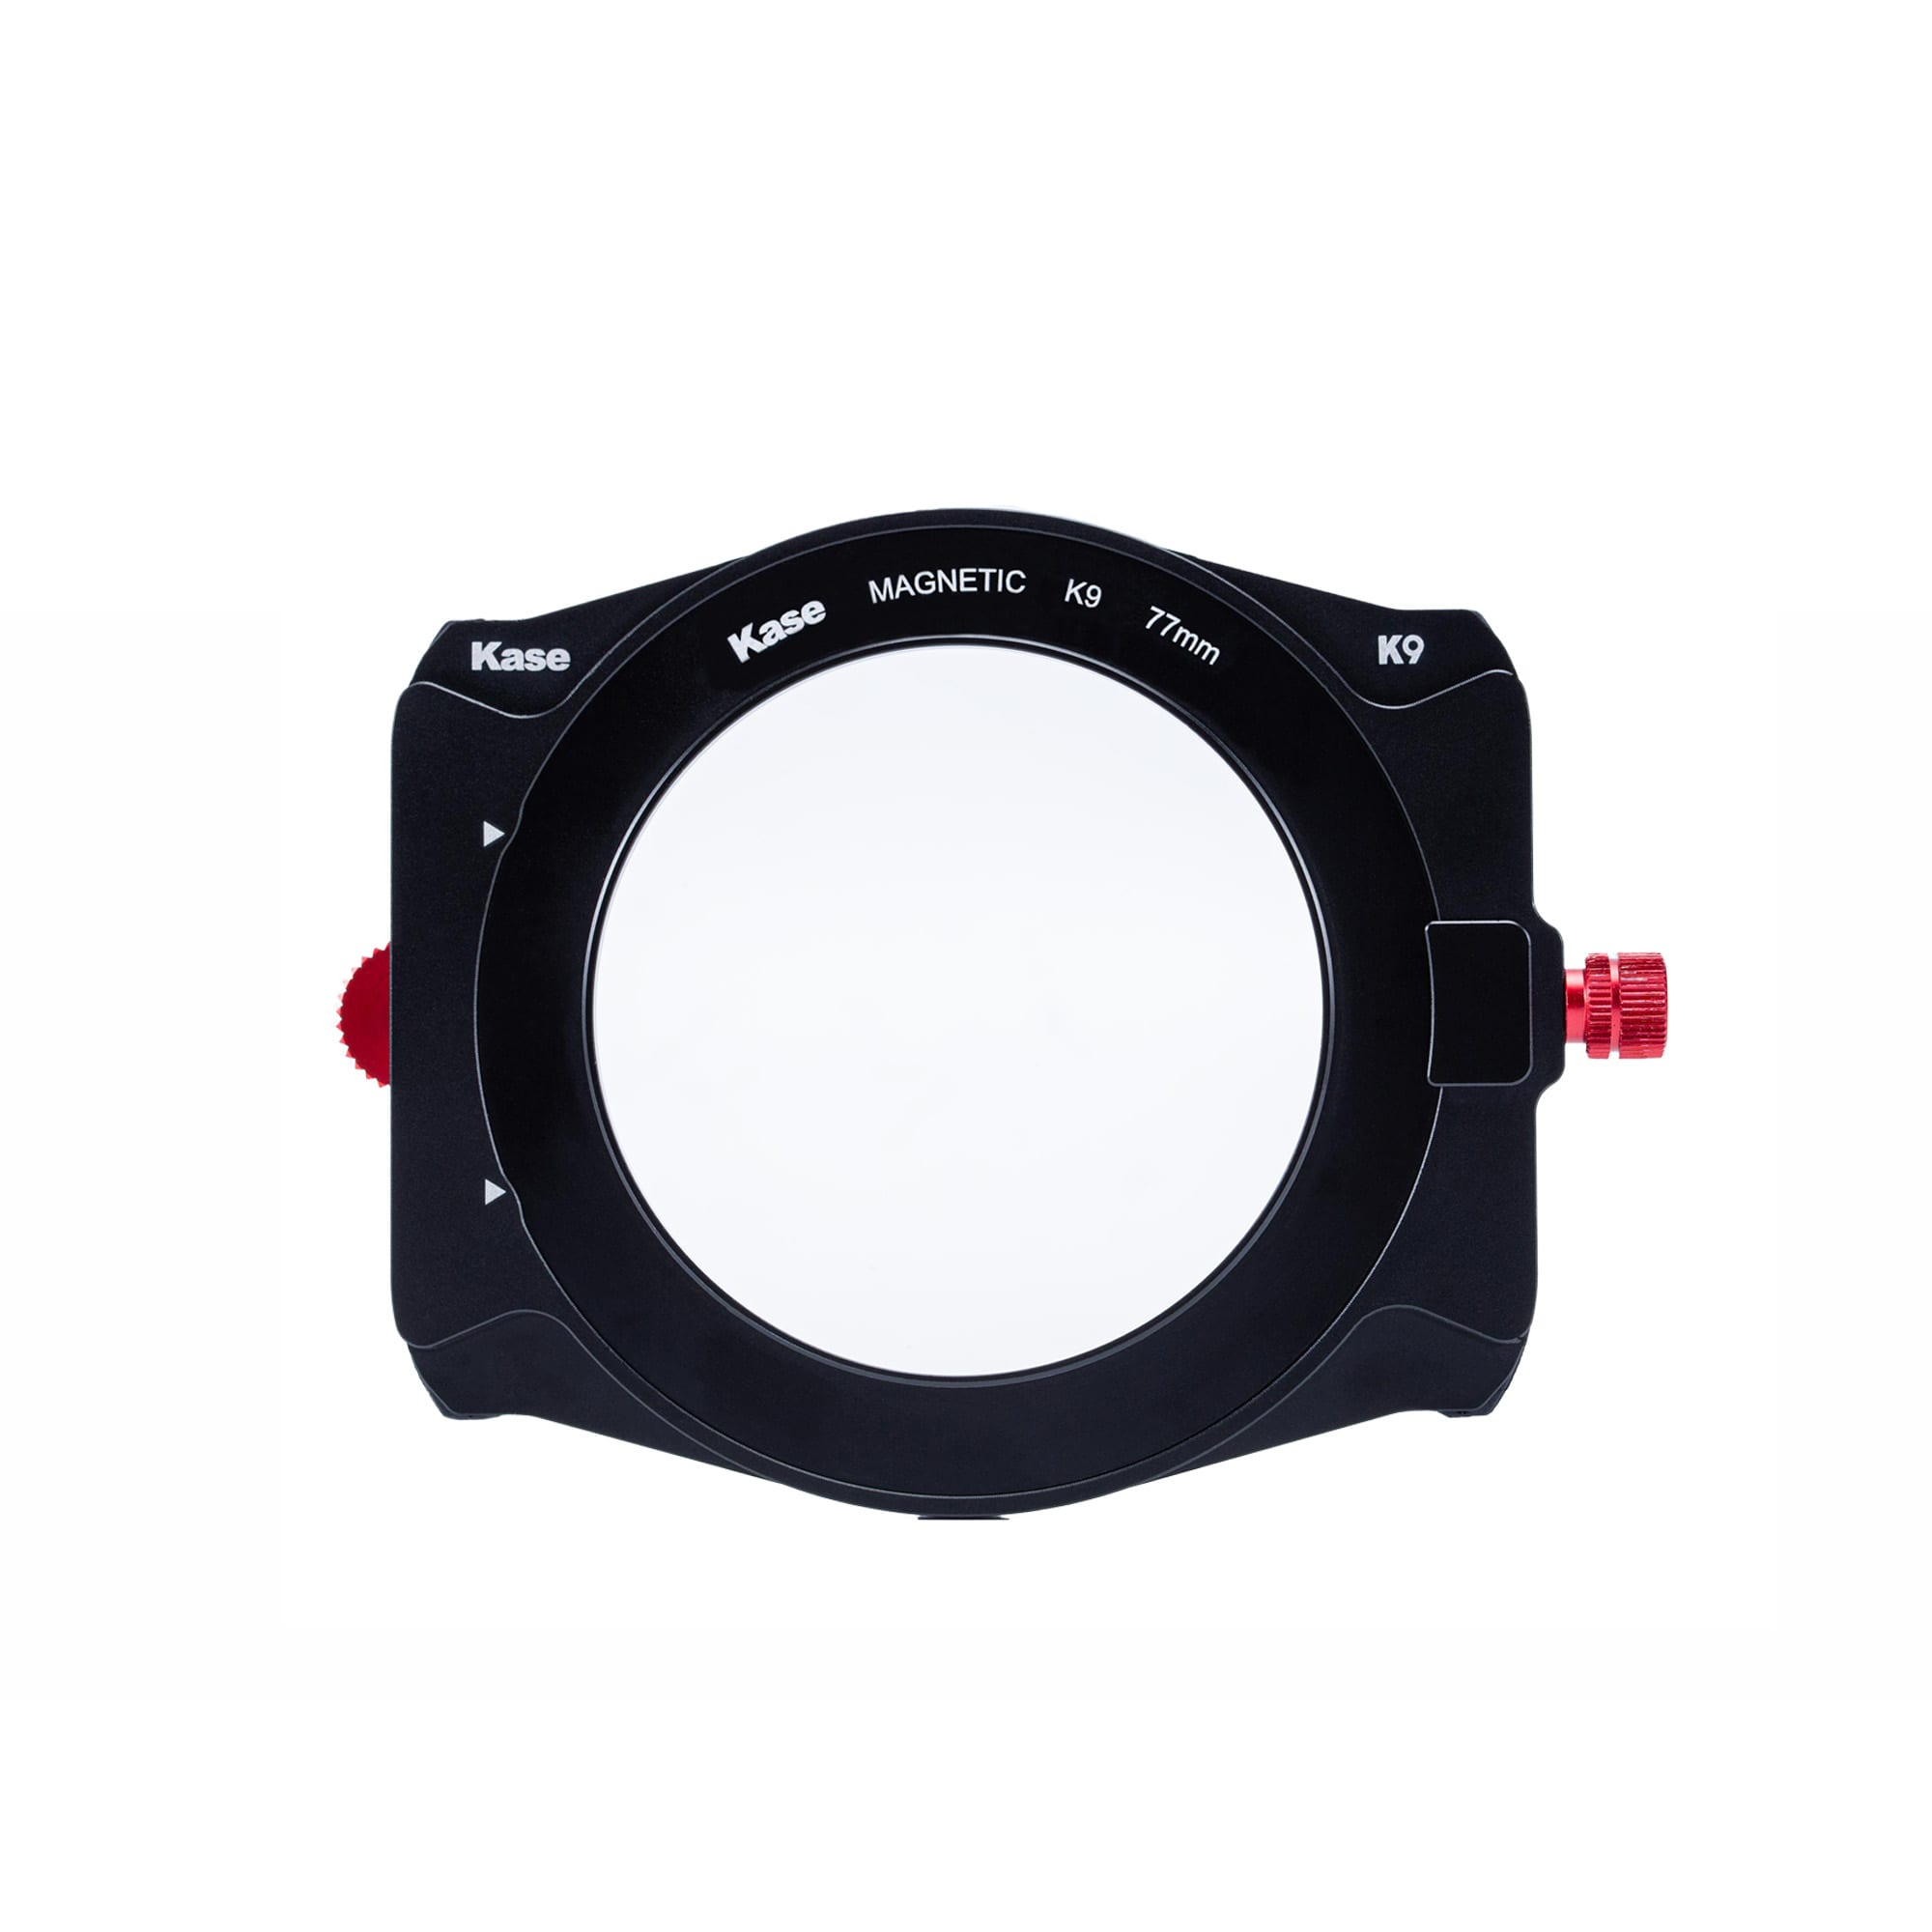 Kase K9 100mm Filter Holder